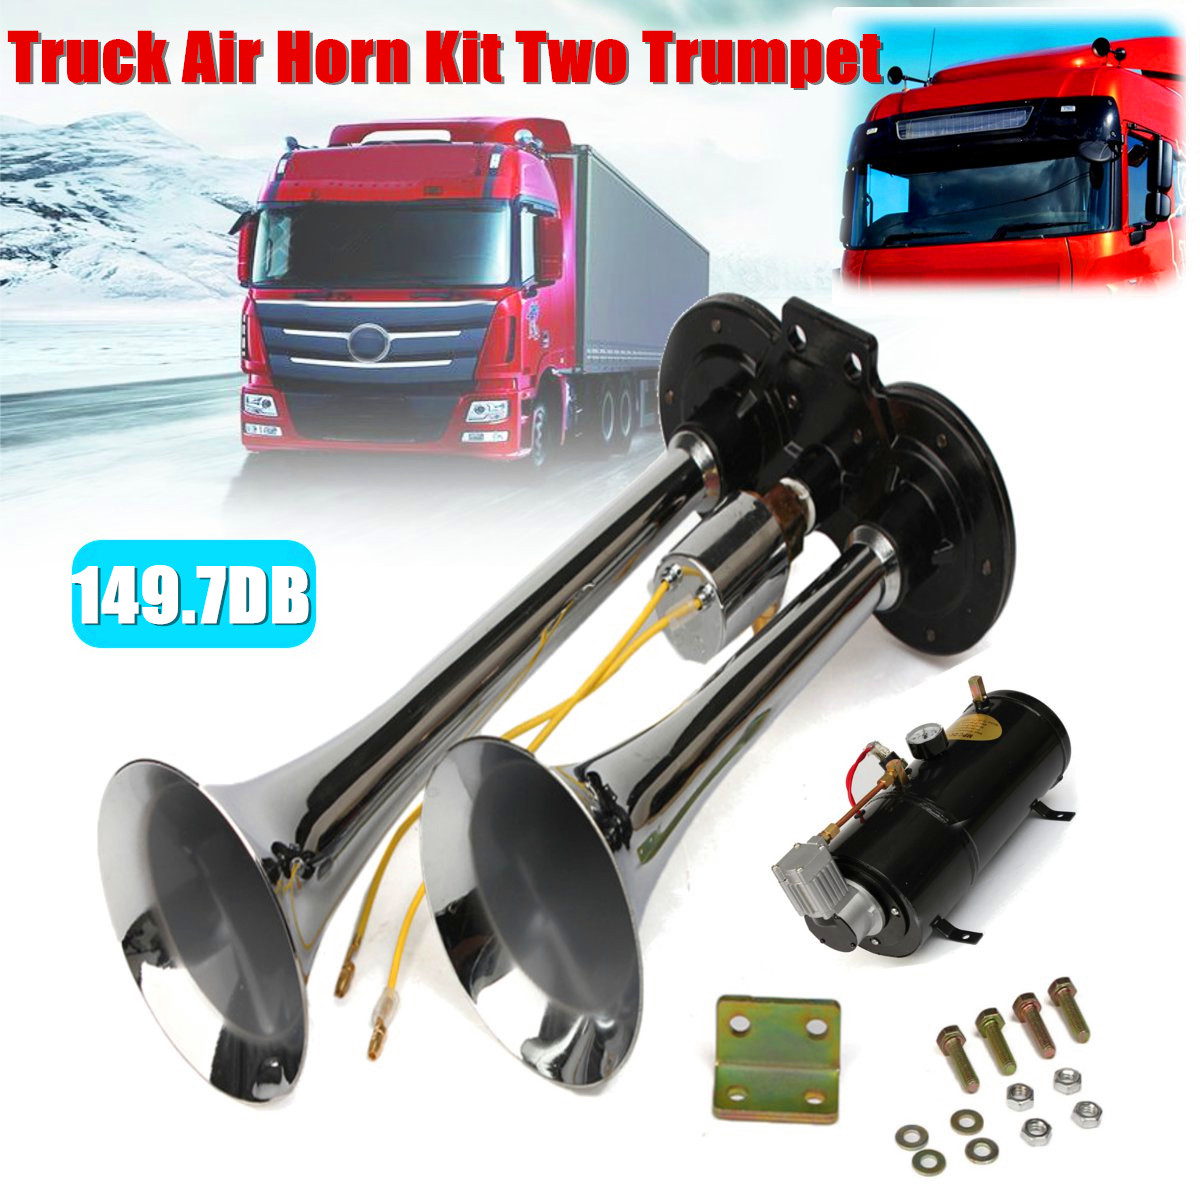 купить 149.7 DB Truck Air Horn Kit Two Trumpet 110 PSI 12V DC Compressor Pressure Gauge 12ft Tubing по цене 5990.58 рублей